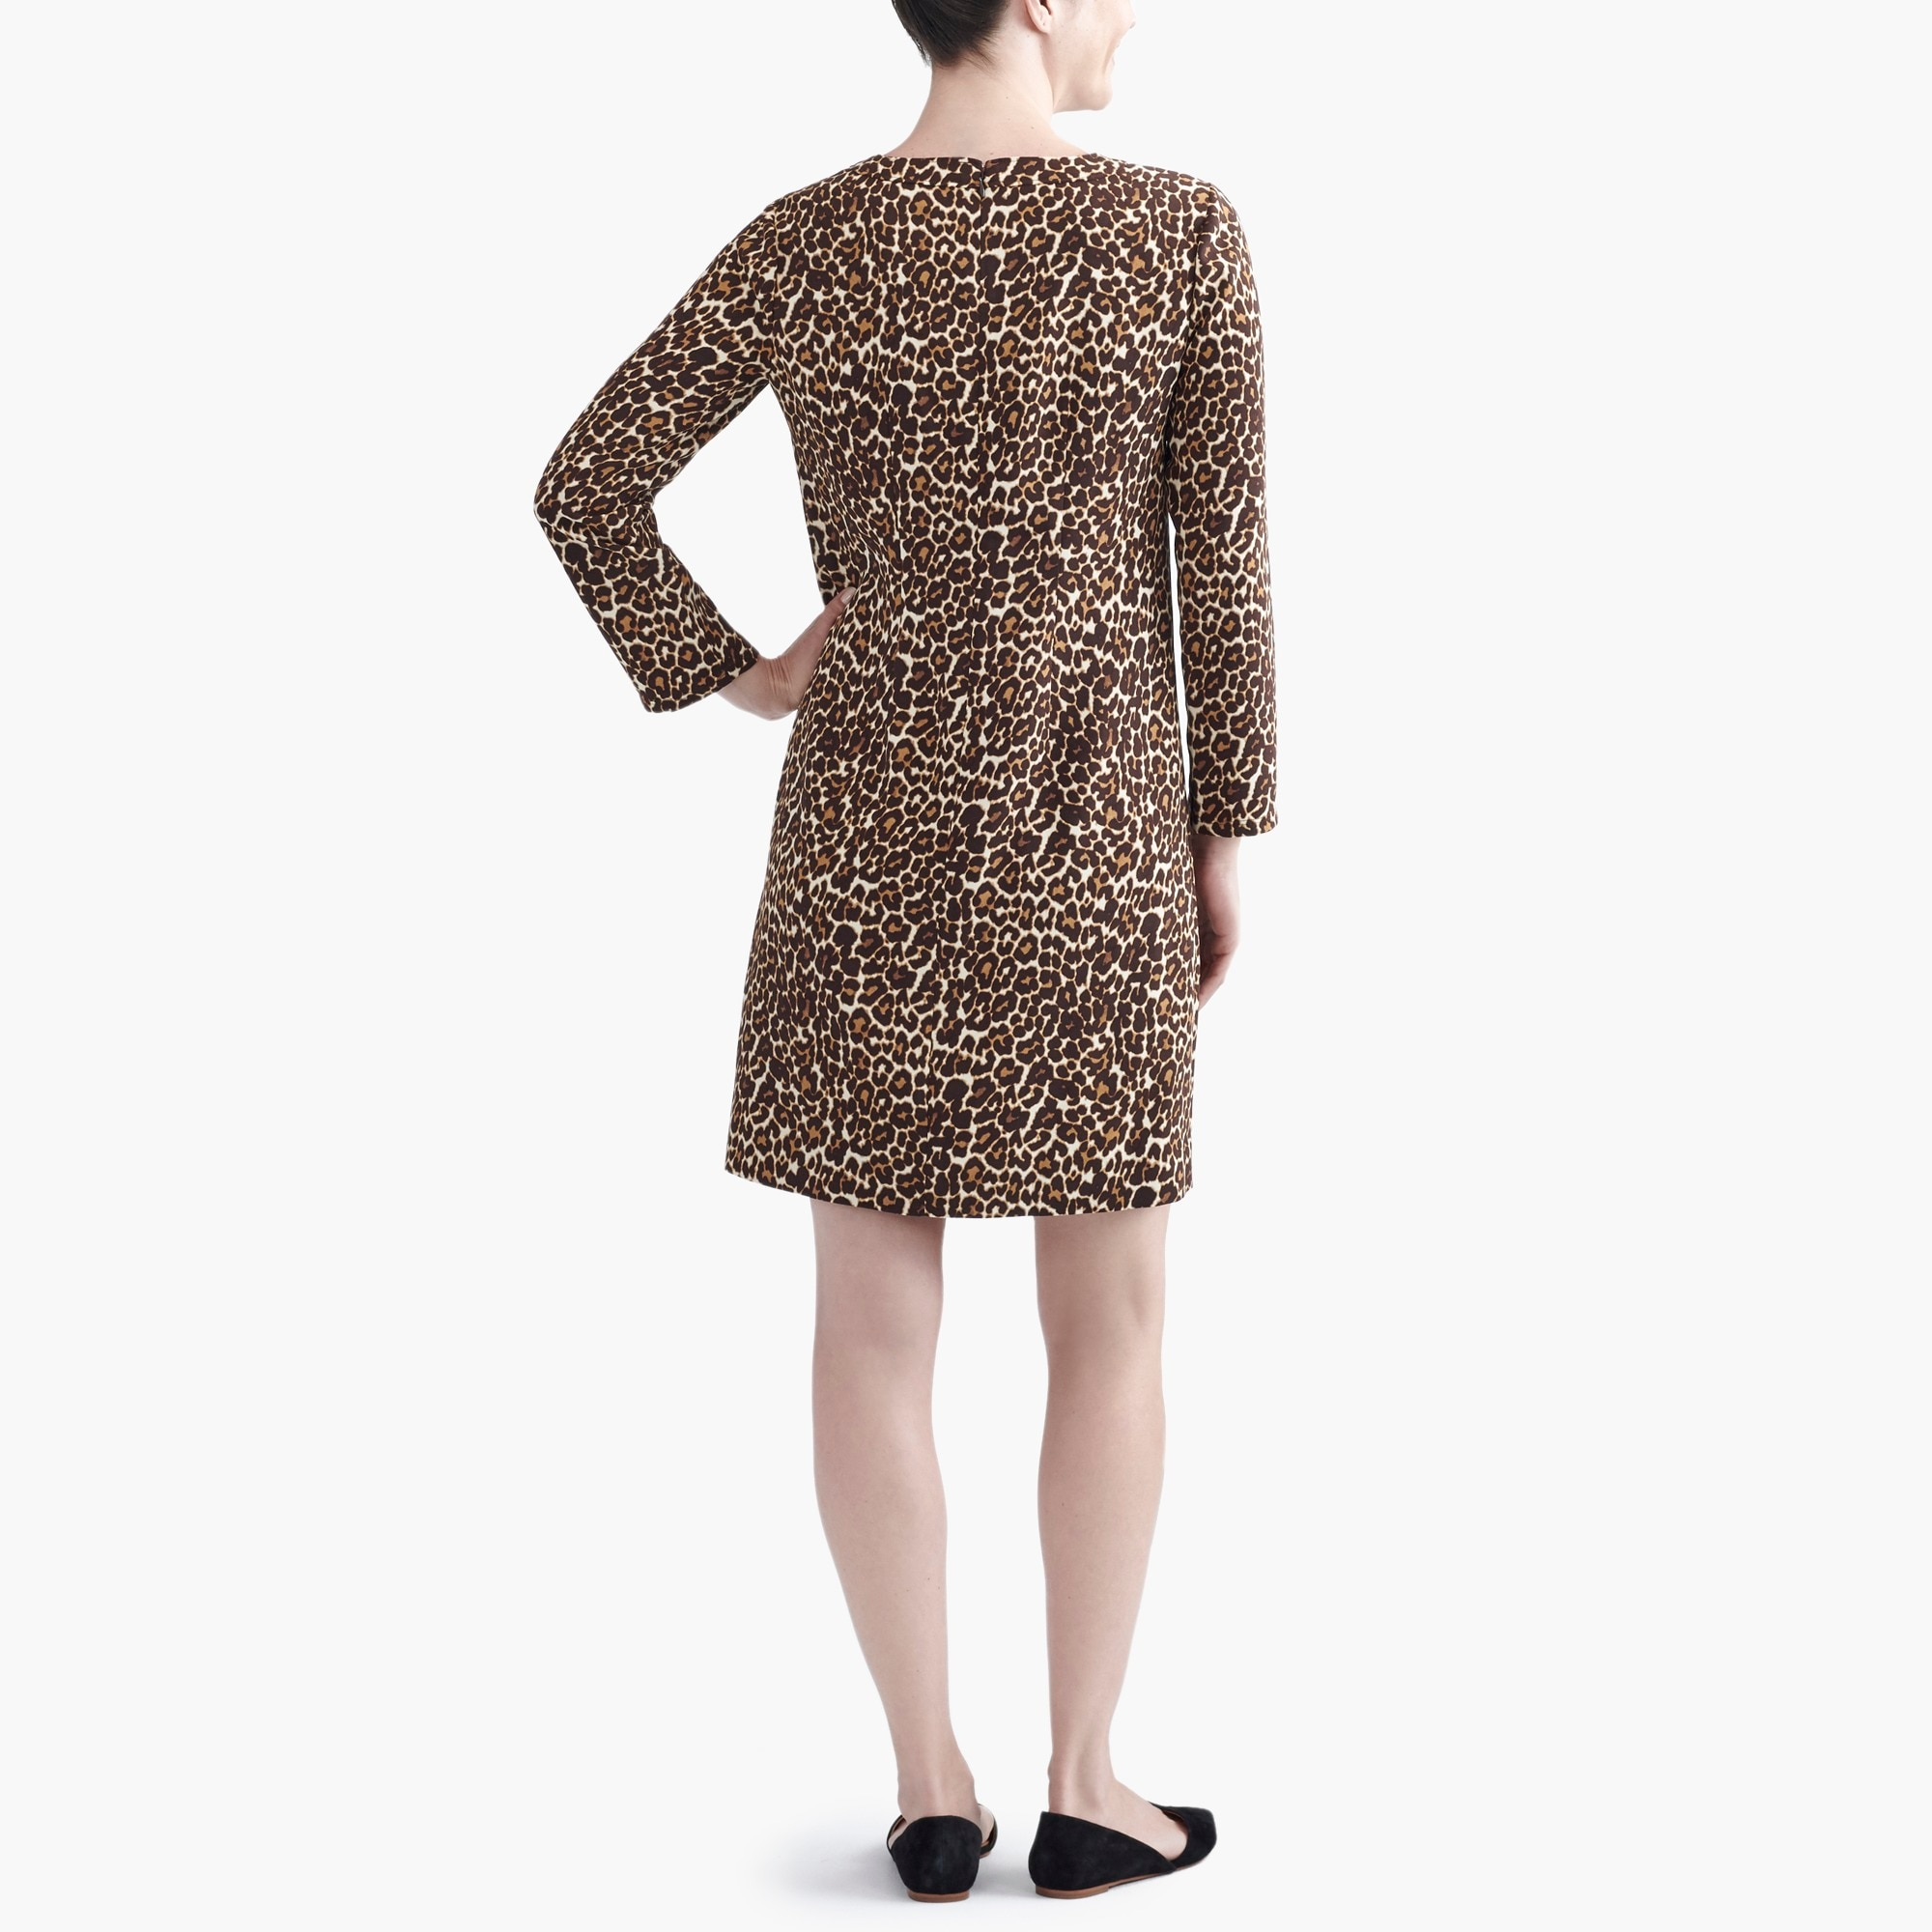 Crepe shift dress in cat print